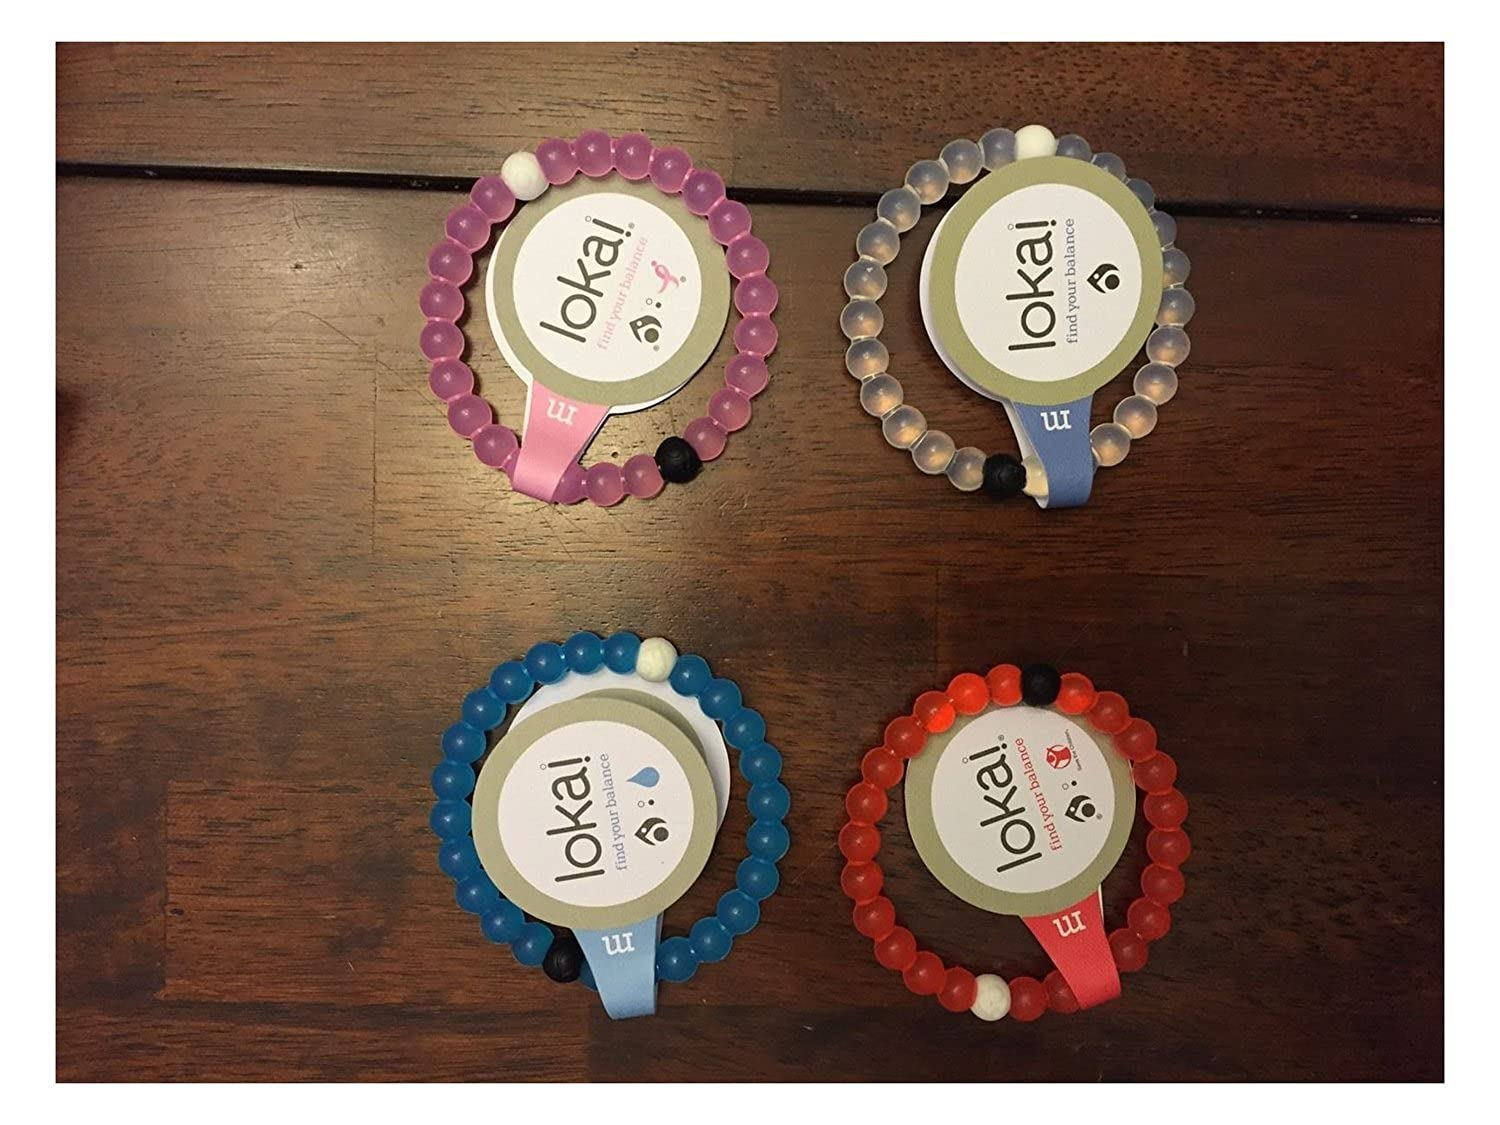 Set Of 4 Lokai Bracelets--Authentic!! Medium Bracelets In Four Different Colors